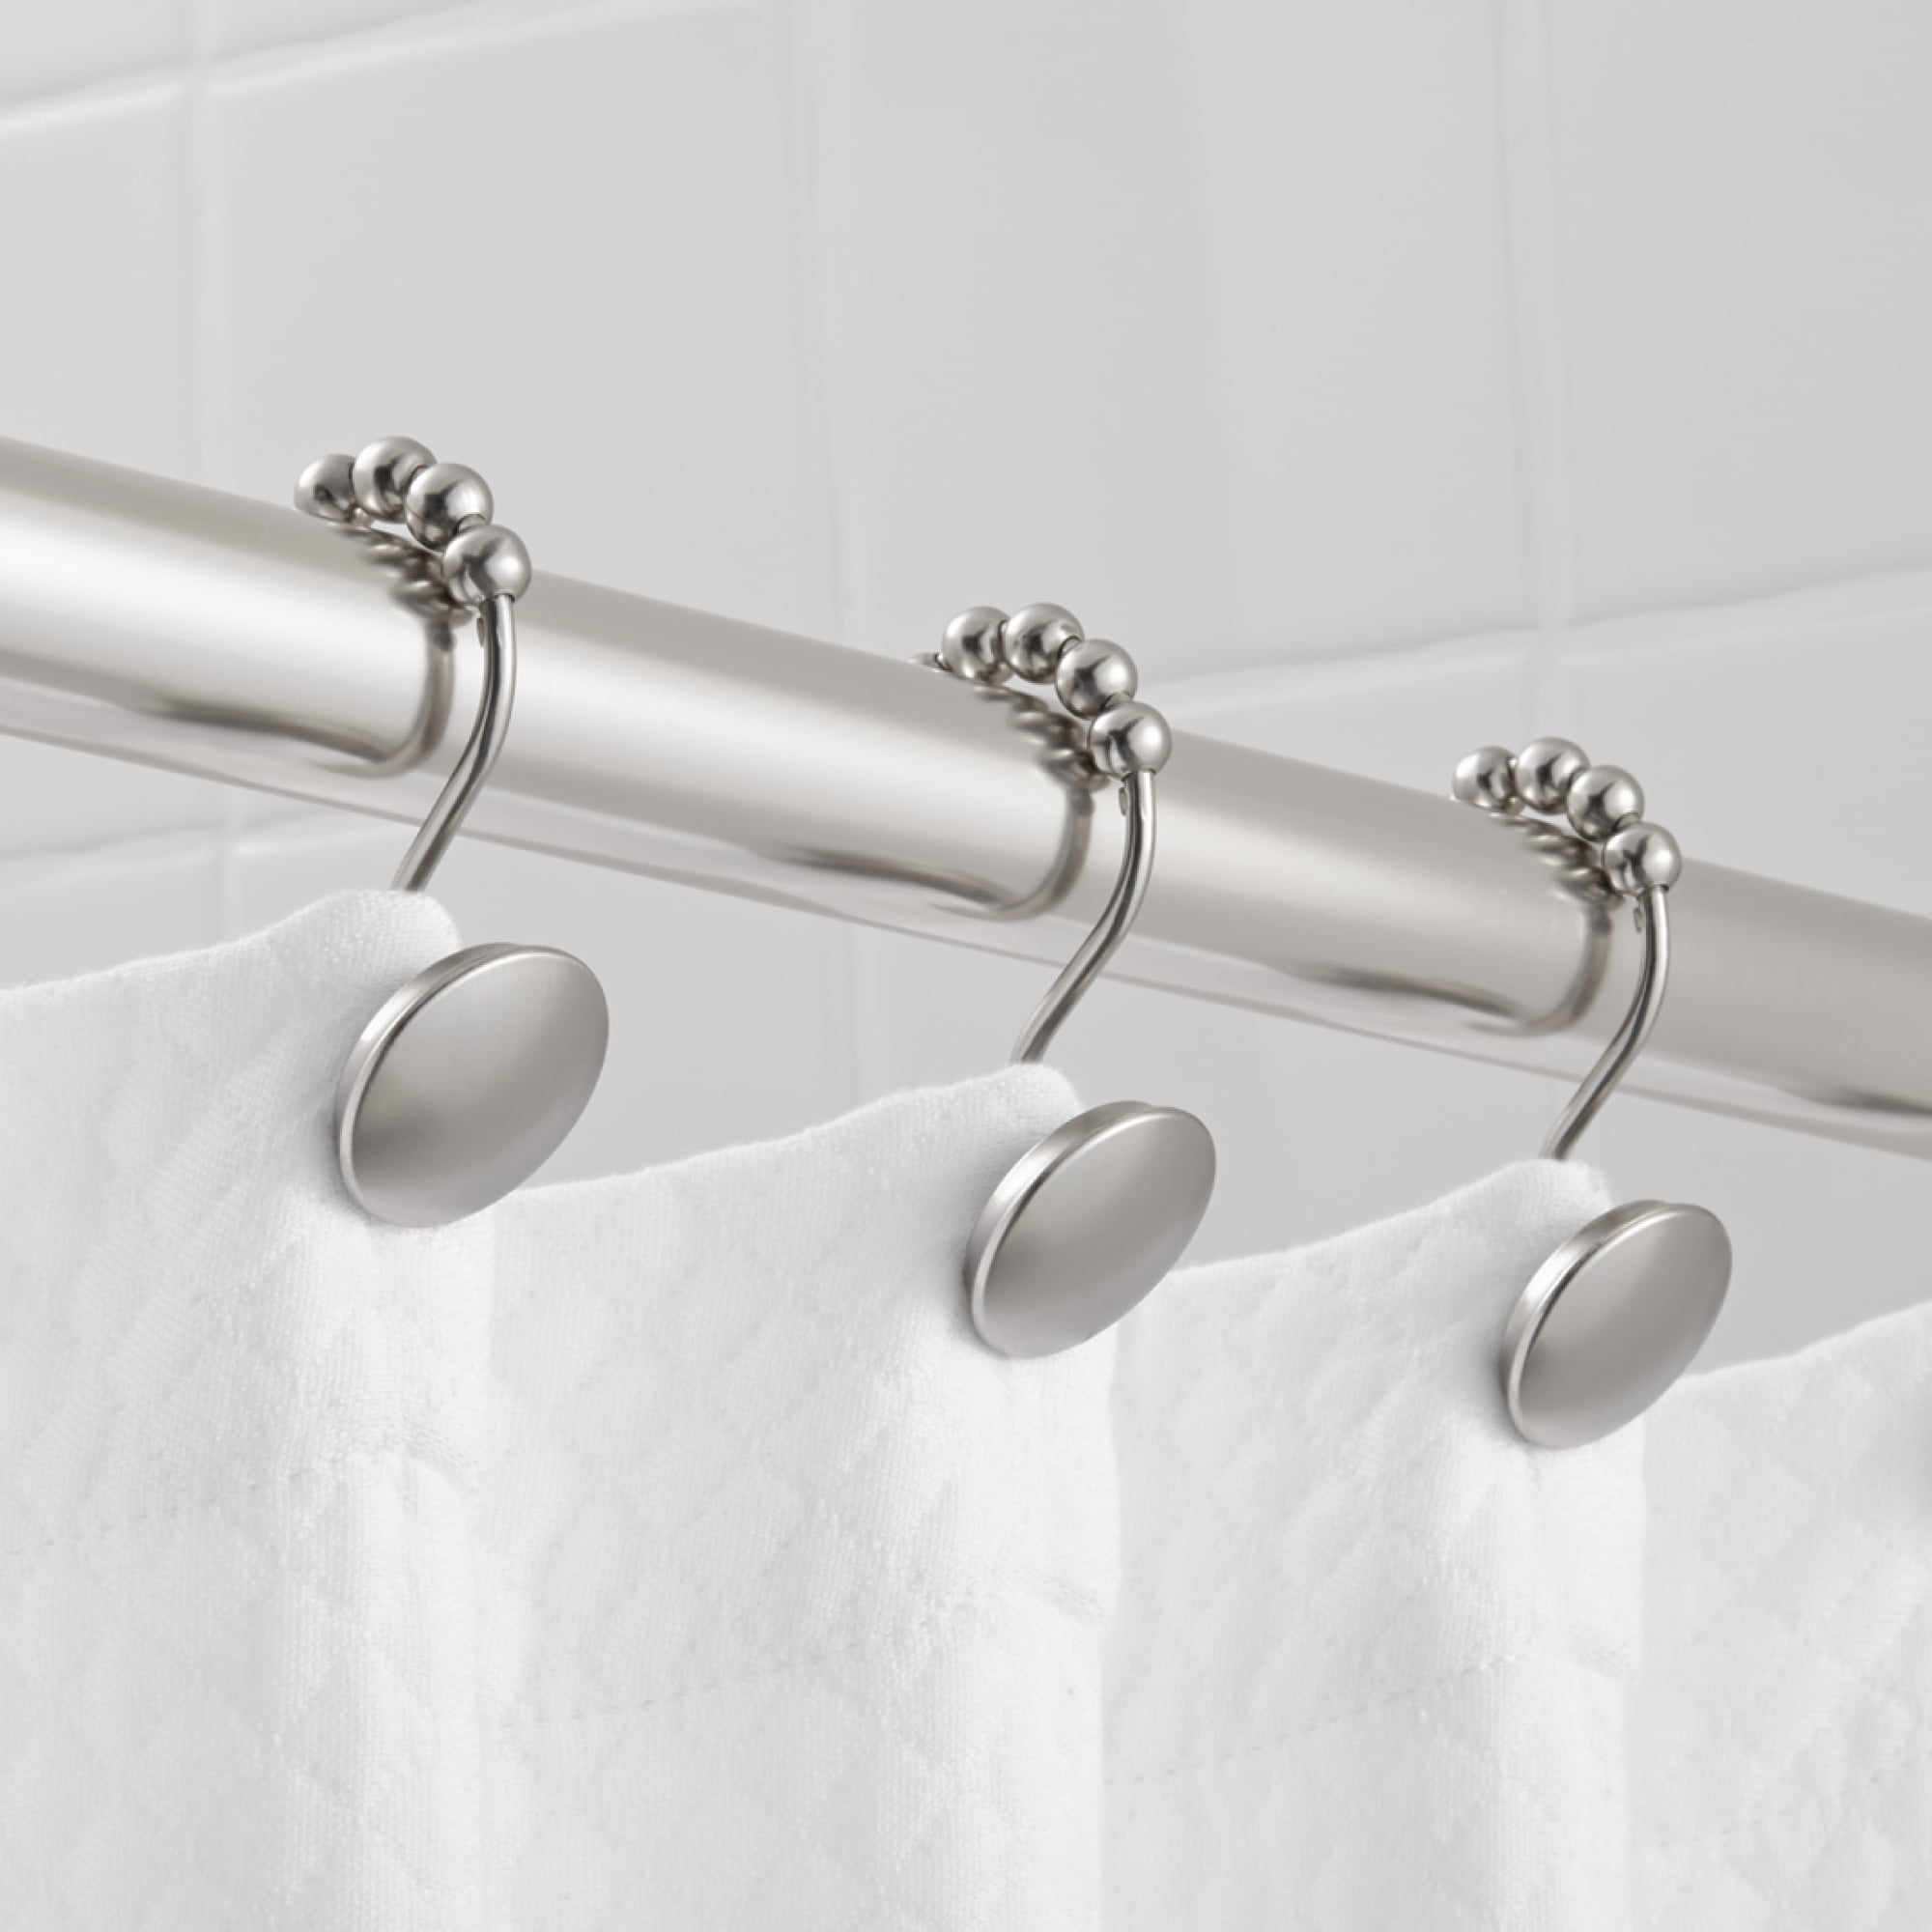 Hotel Style Peyton Shower Hooks With Easy Glide Brushed Nickel Walmart Com Walmart Com